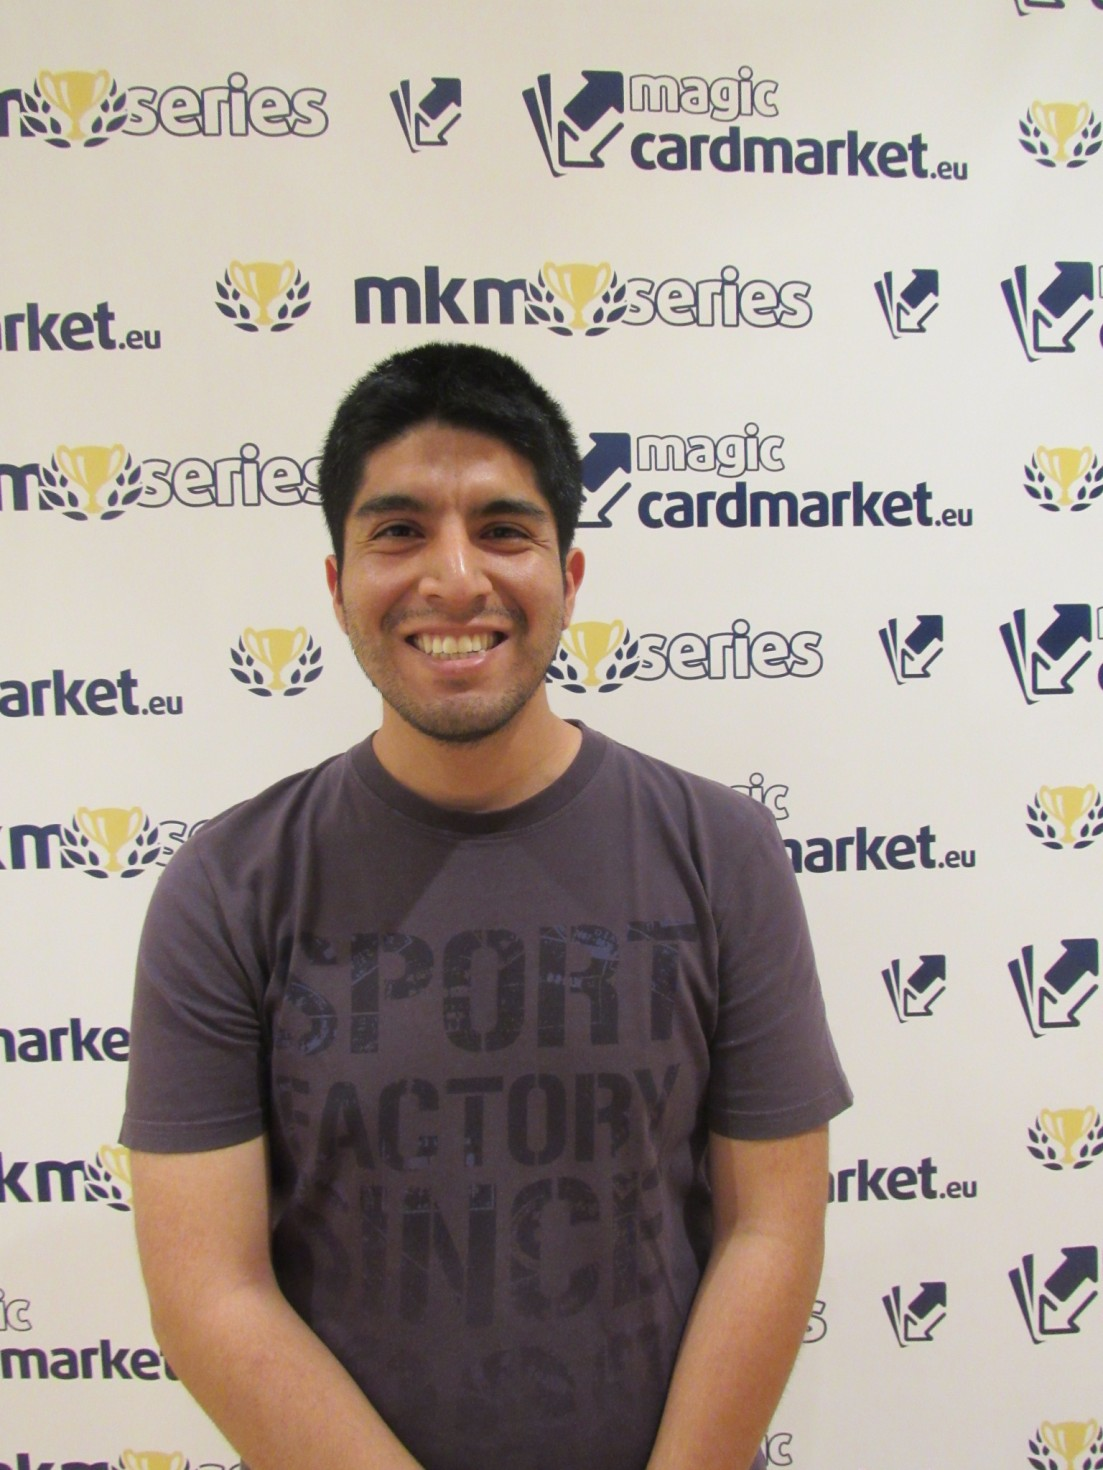 Carlos Victor Vásquez advanced to the Top 8 of our Standard main event at MKM Series Madrid 2016!